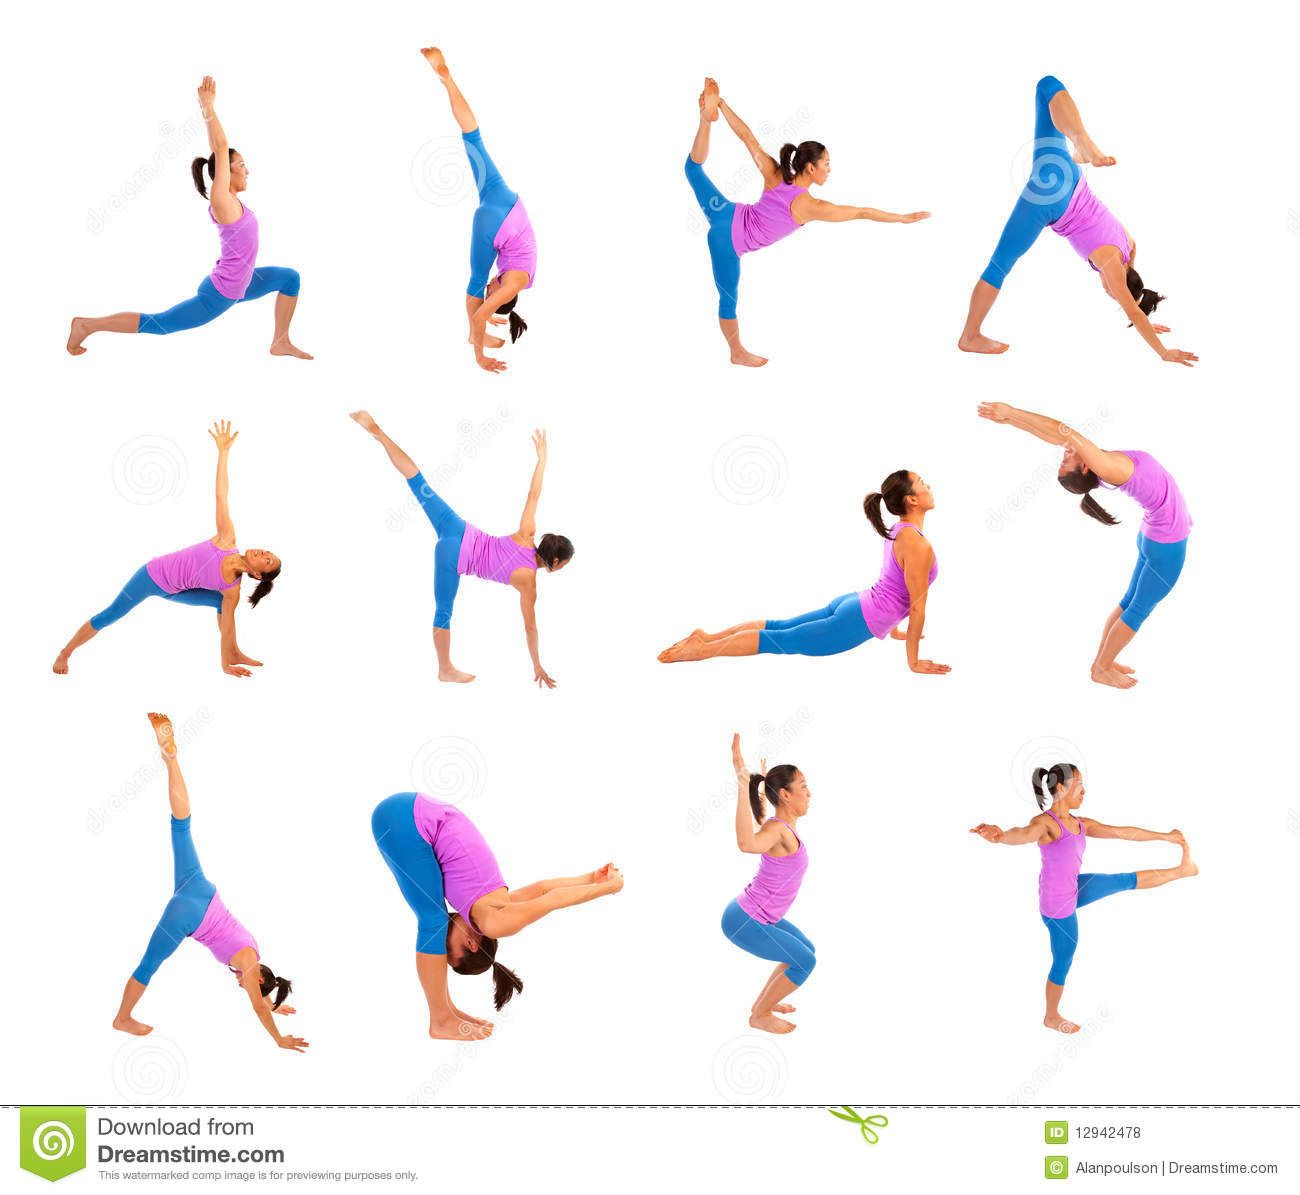 Yoga Pose For Healthy Life Learn And Do Yoga Make A Daily Routine For Yoga Hatha Yoga Poses Yoga Poses Basic Yoga Poses